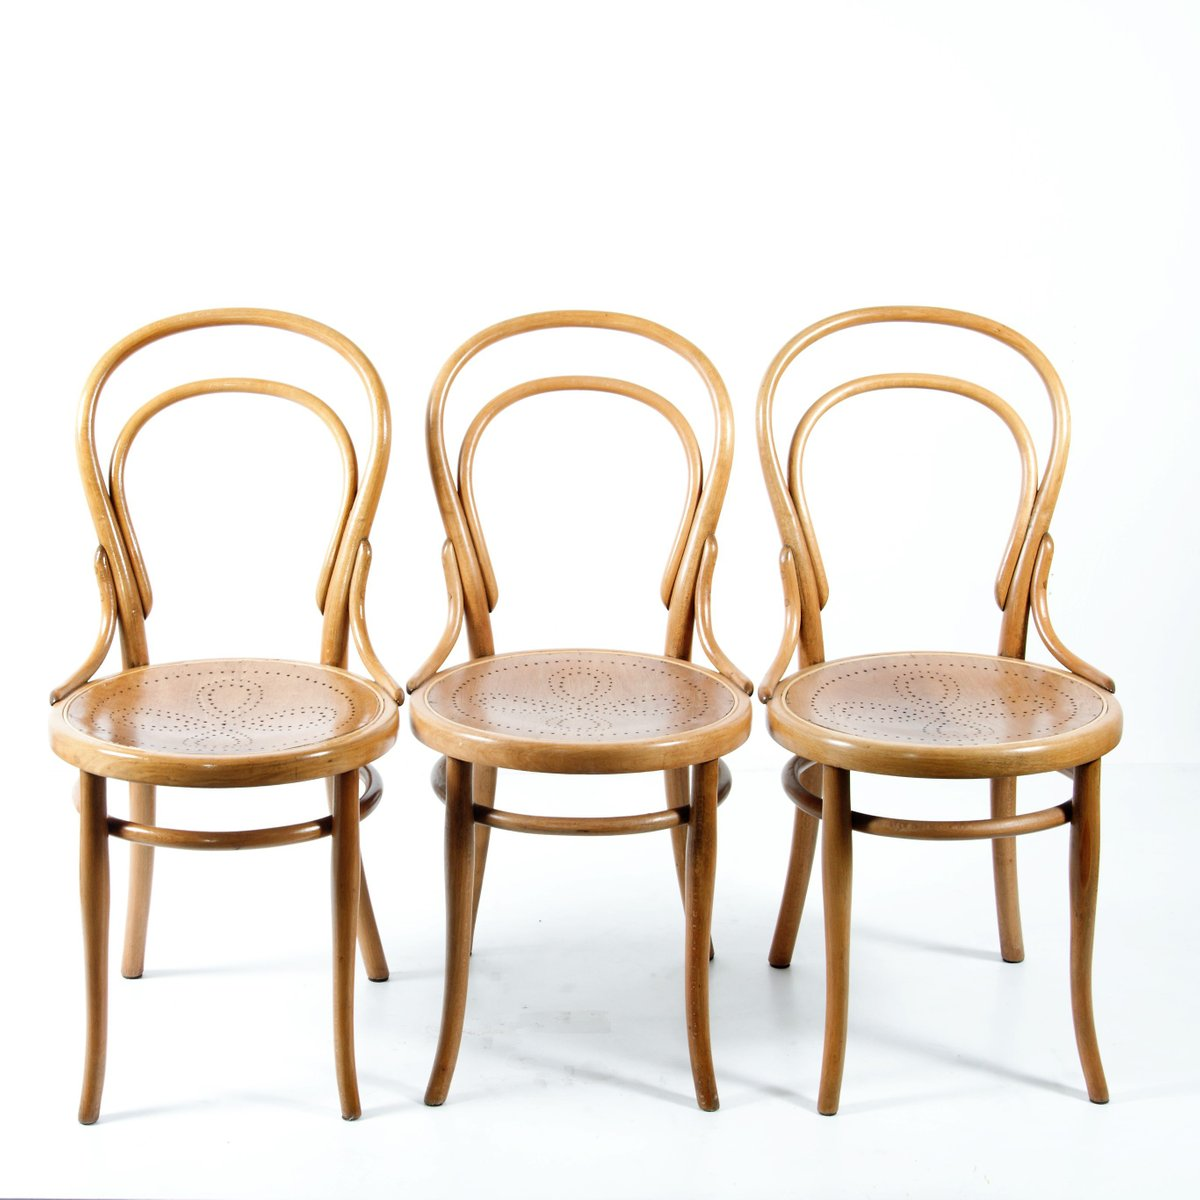 No 14 Thonet Chairs 1920s Set Of 4 For Sale At Pamono